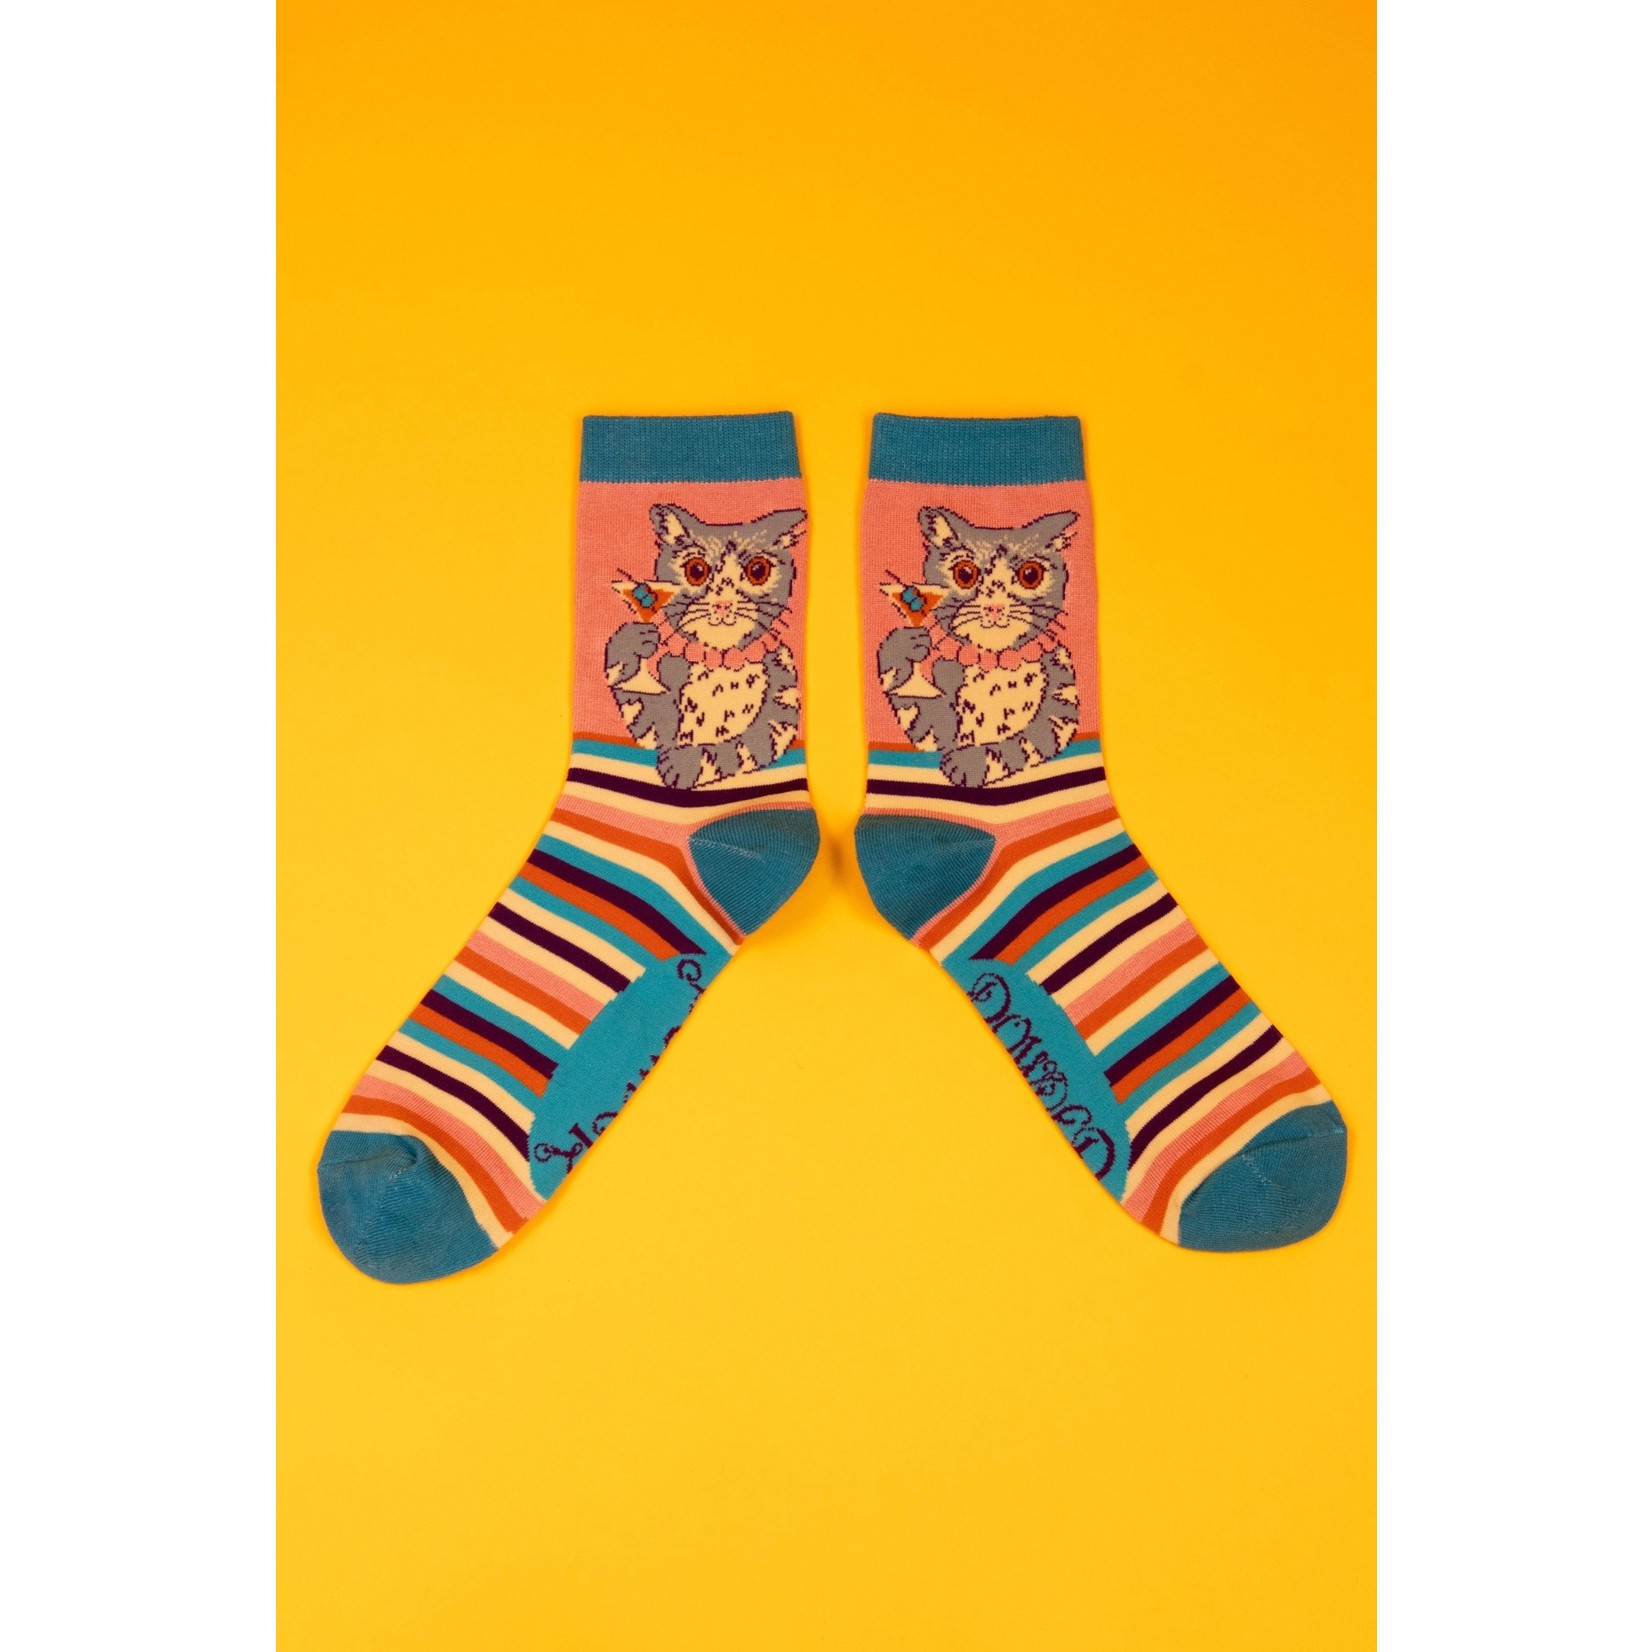 Powder Cocktail Pussy Ankle Socks in Candy